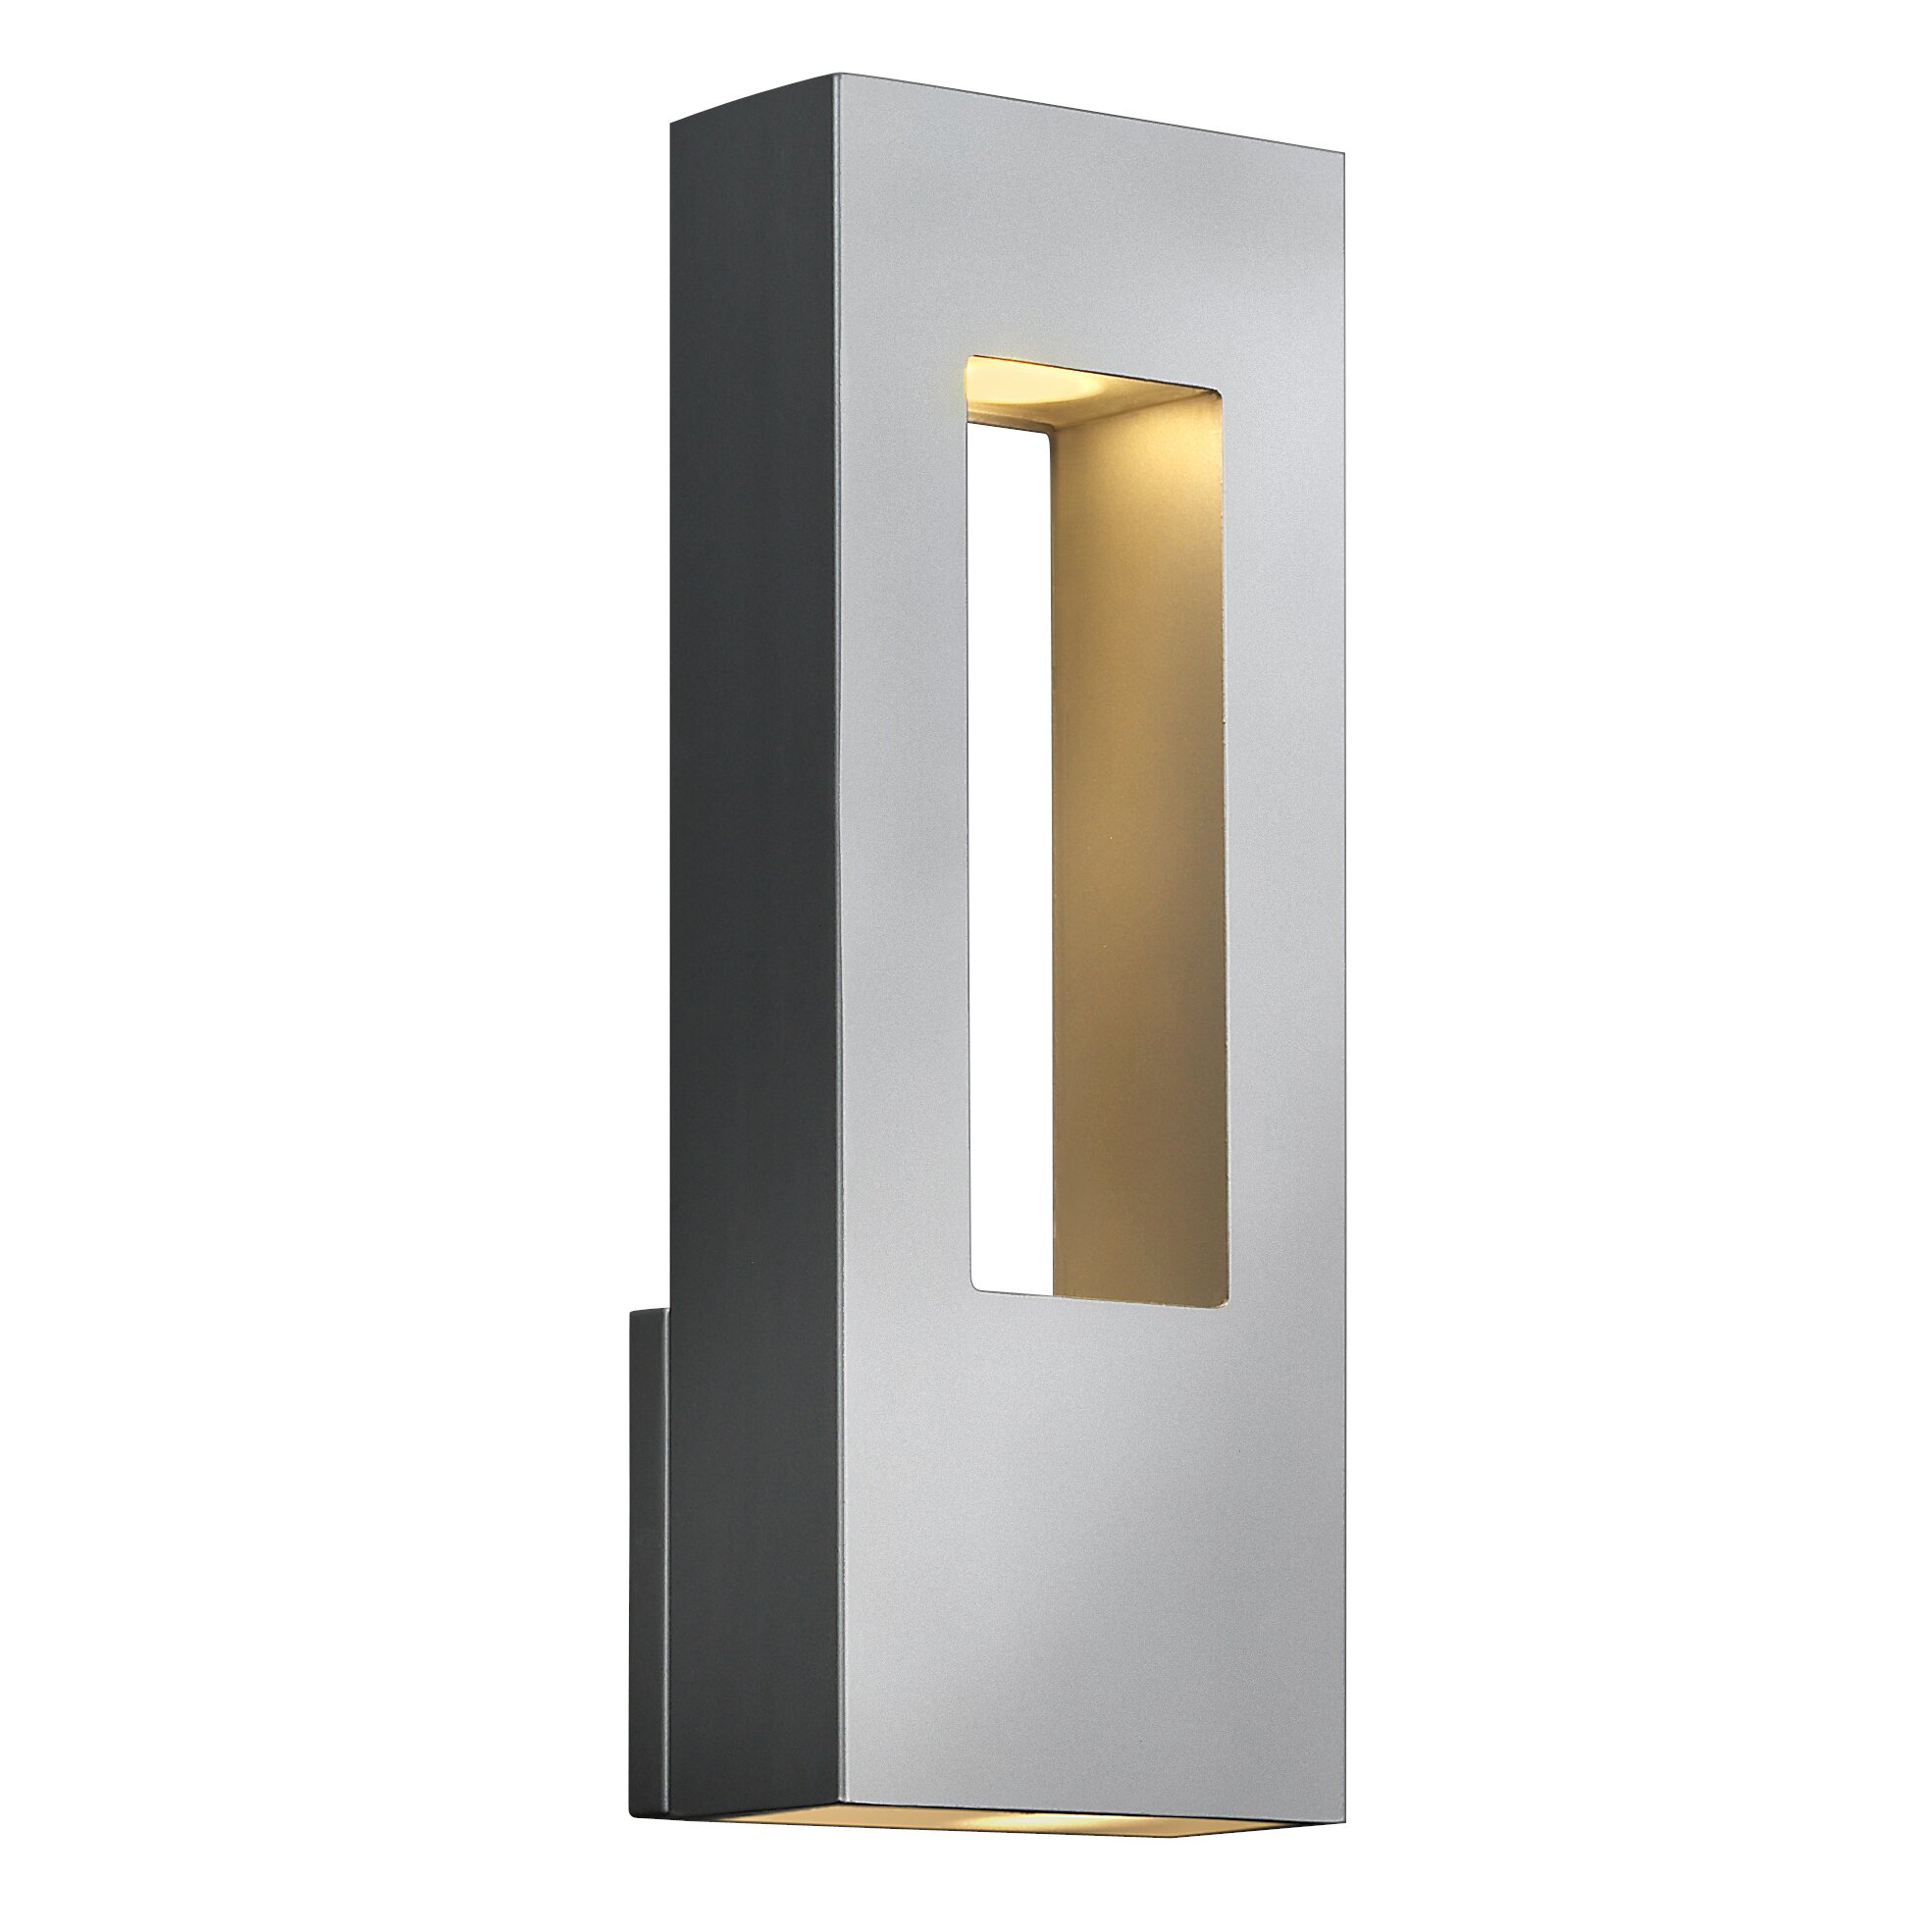 Hinkley lighting atlantis 2 light outdoor sconce reviews wayfair for Exterior light sconce